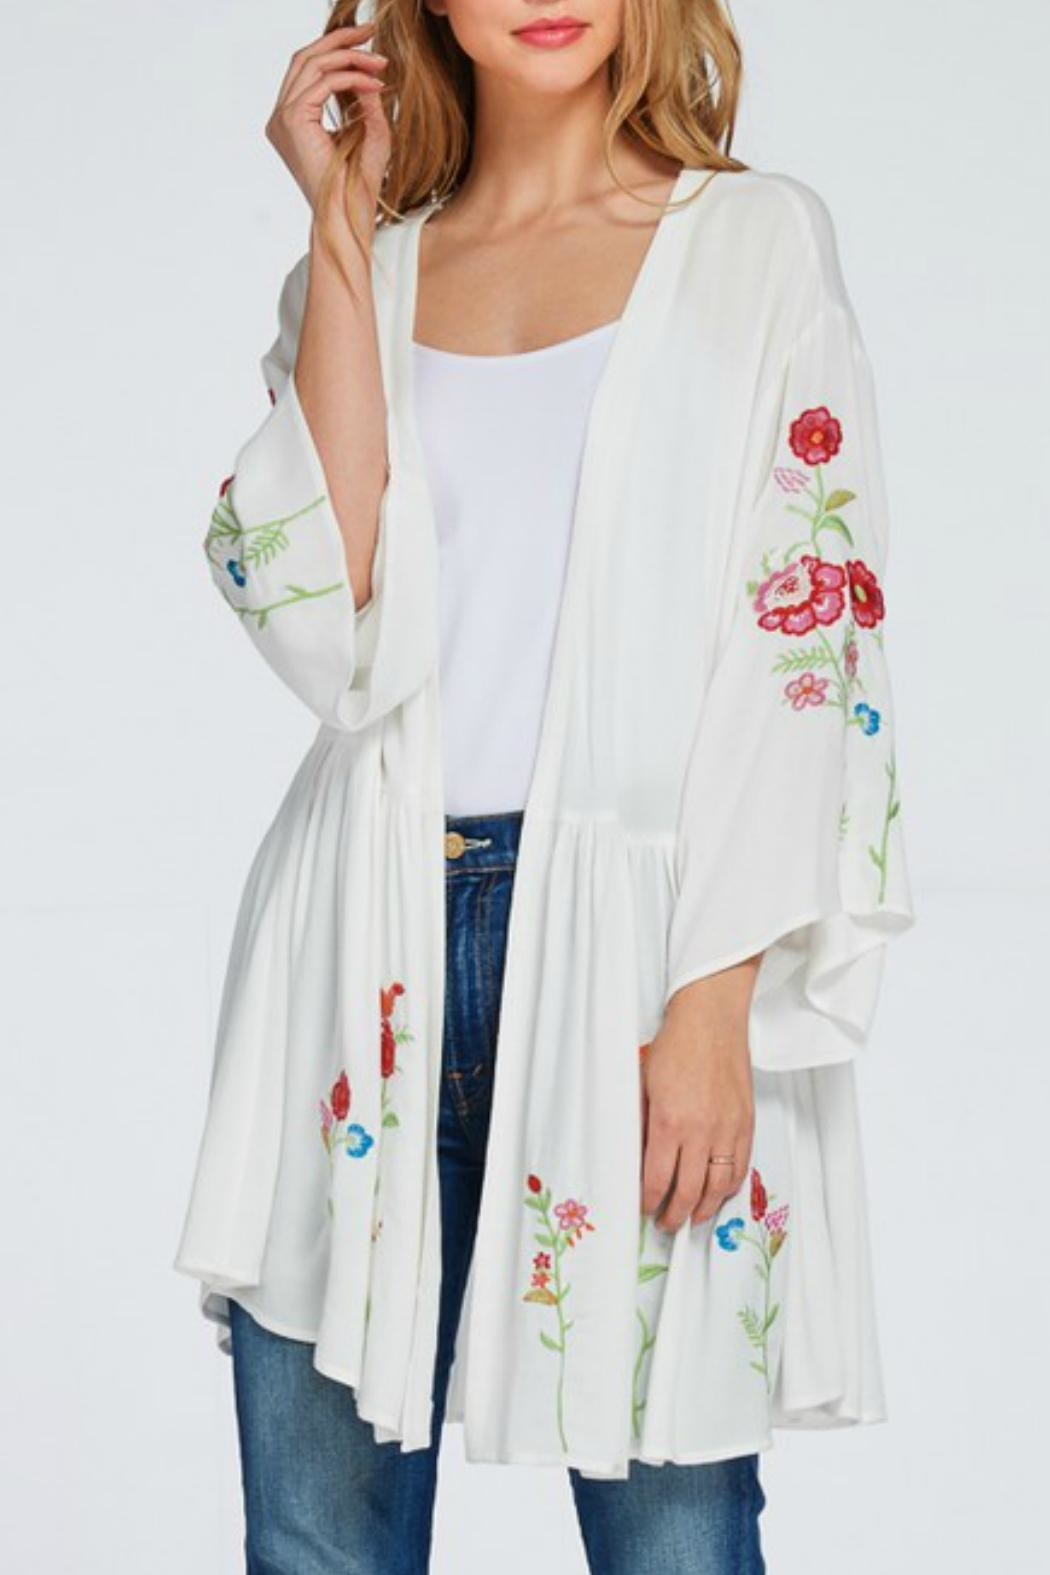 2c58e8c033 Miss Love Floral Embroidered Kimono from California by Apricot Lane ...